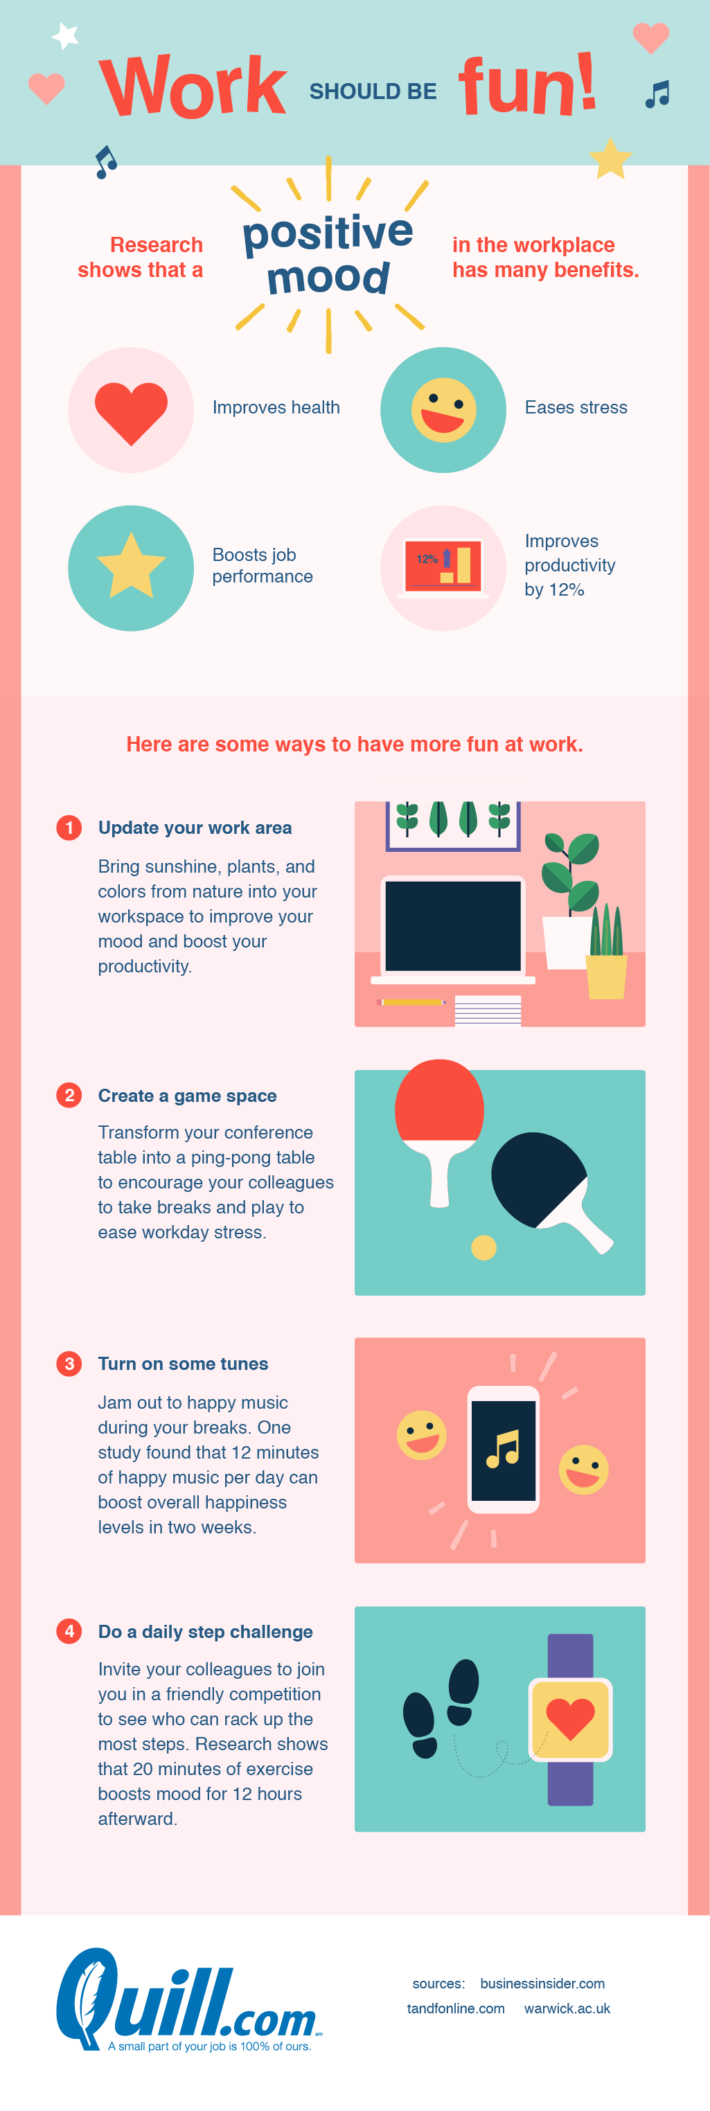 How to have more fun at work